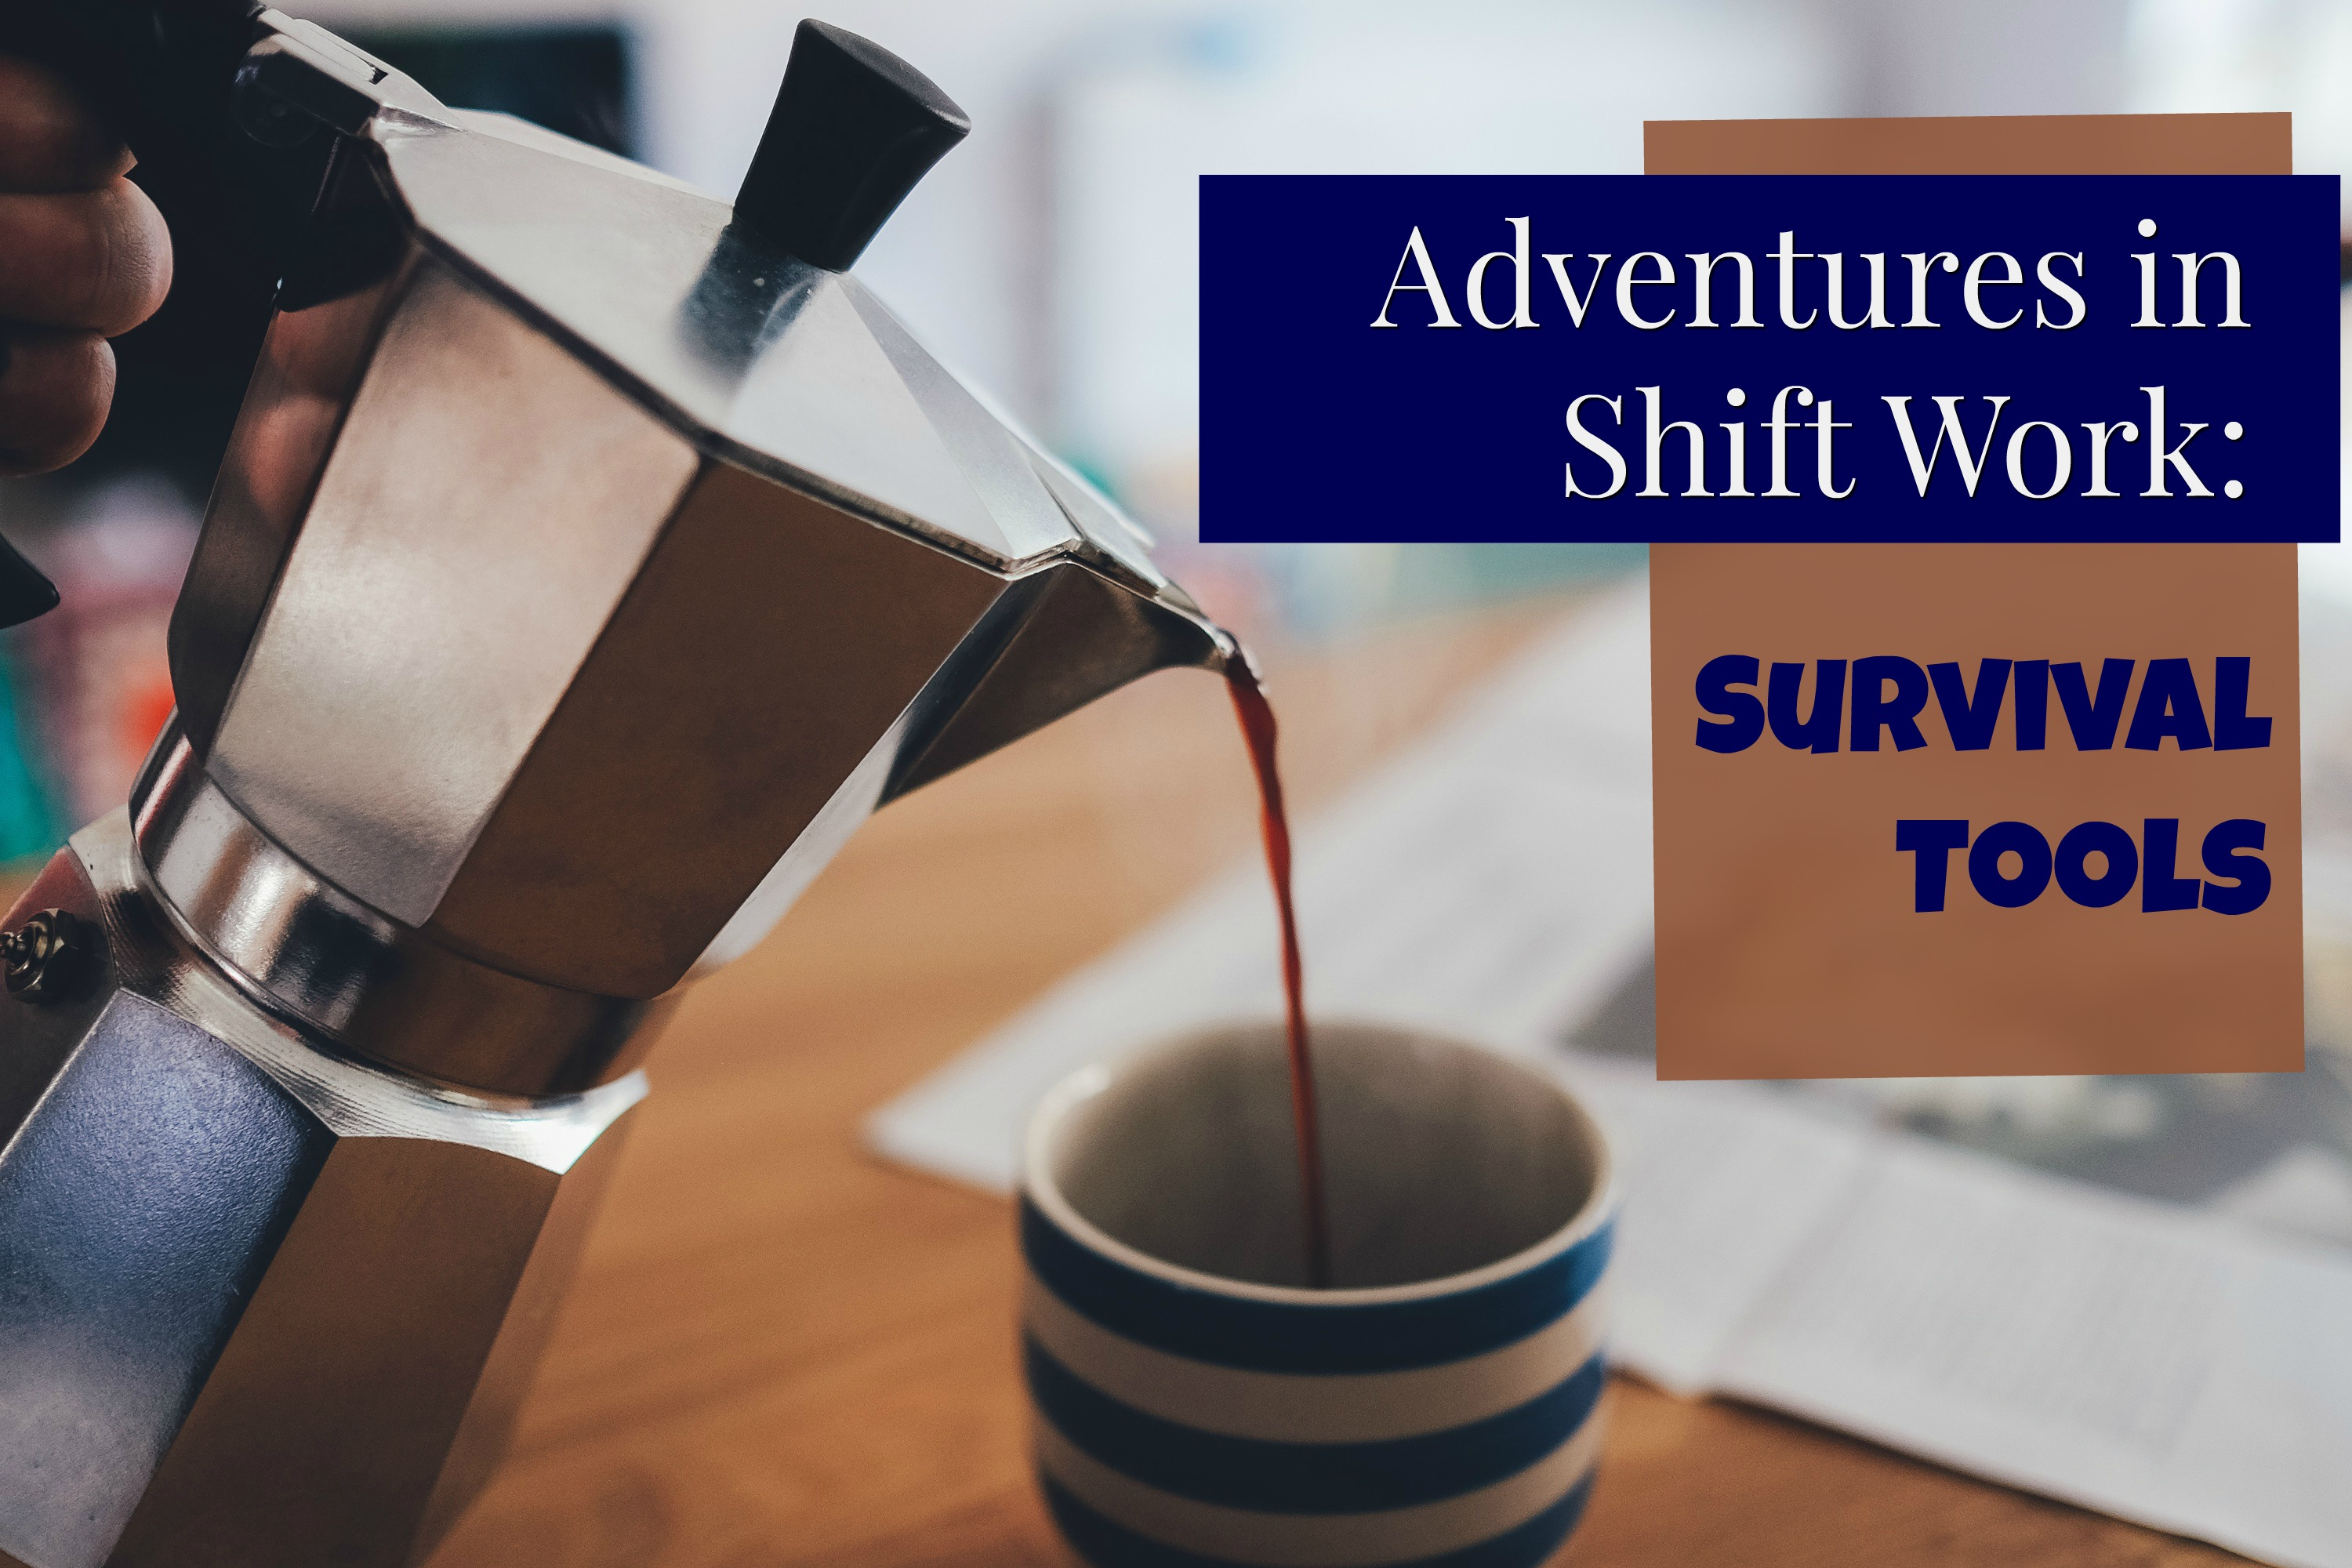 Adventures in Shift Work: Survival Tools